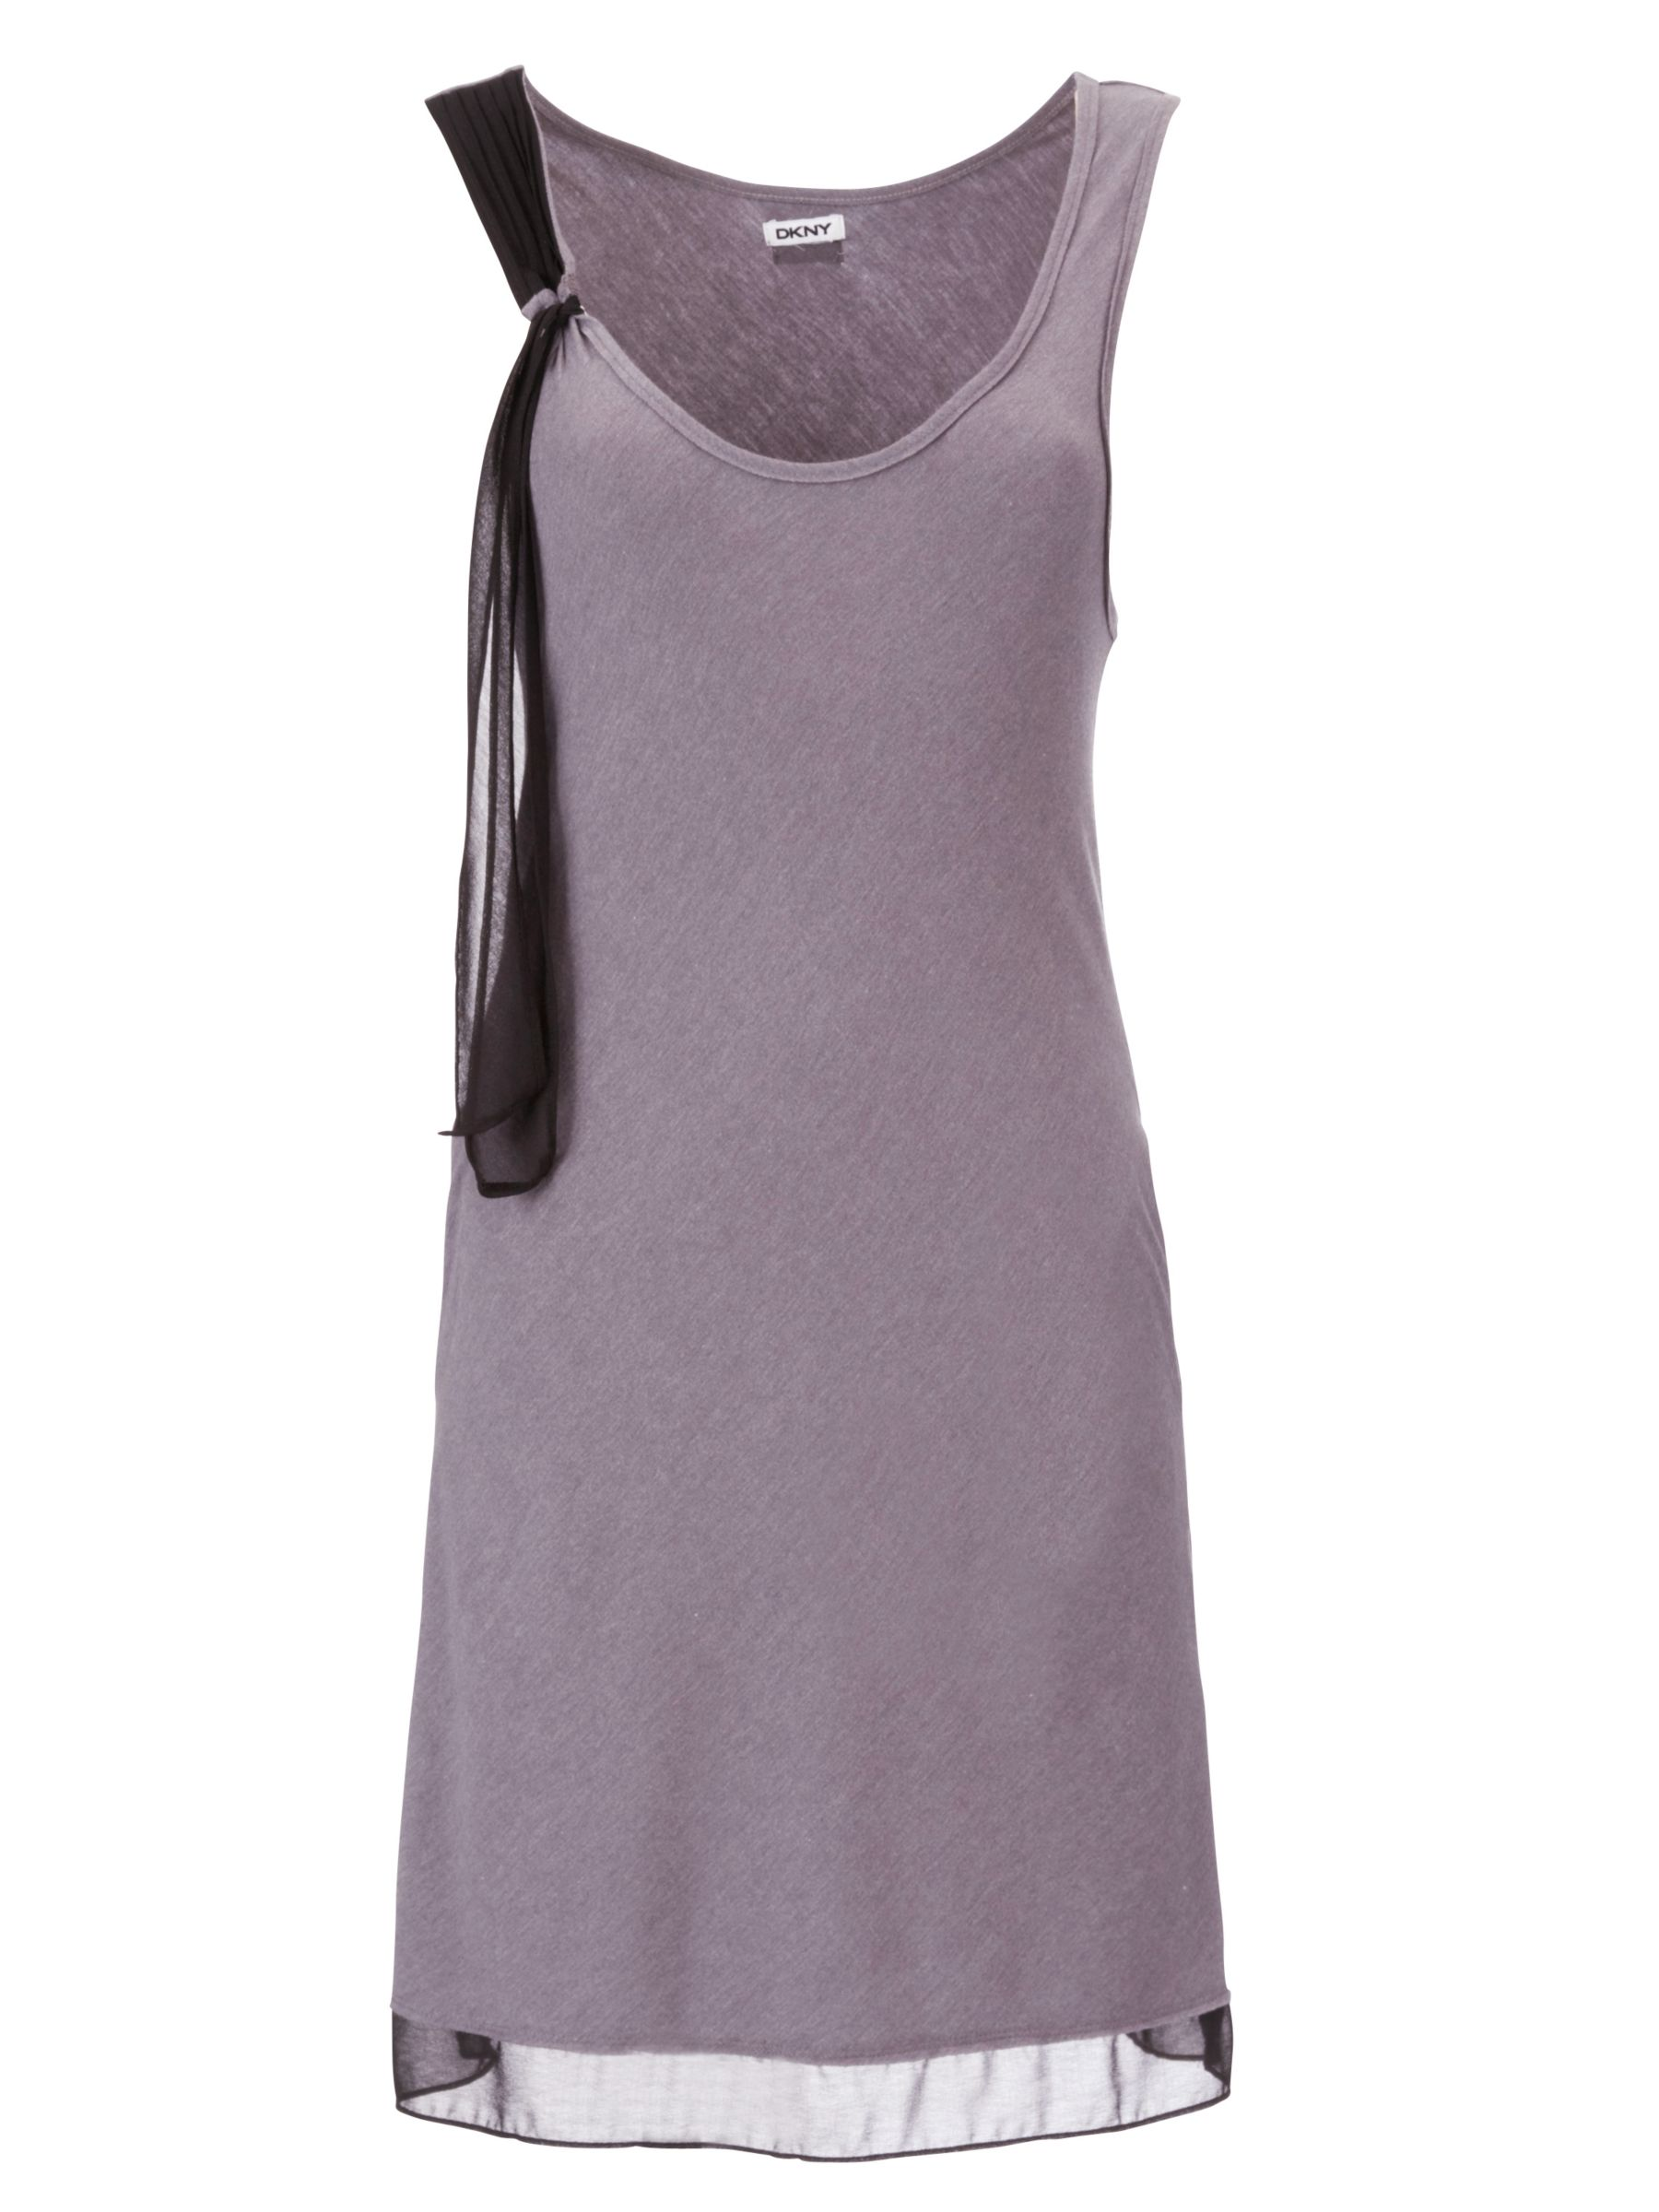 DKNY Crosby Street Built Up Chemise, Grey/Black